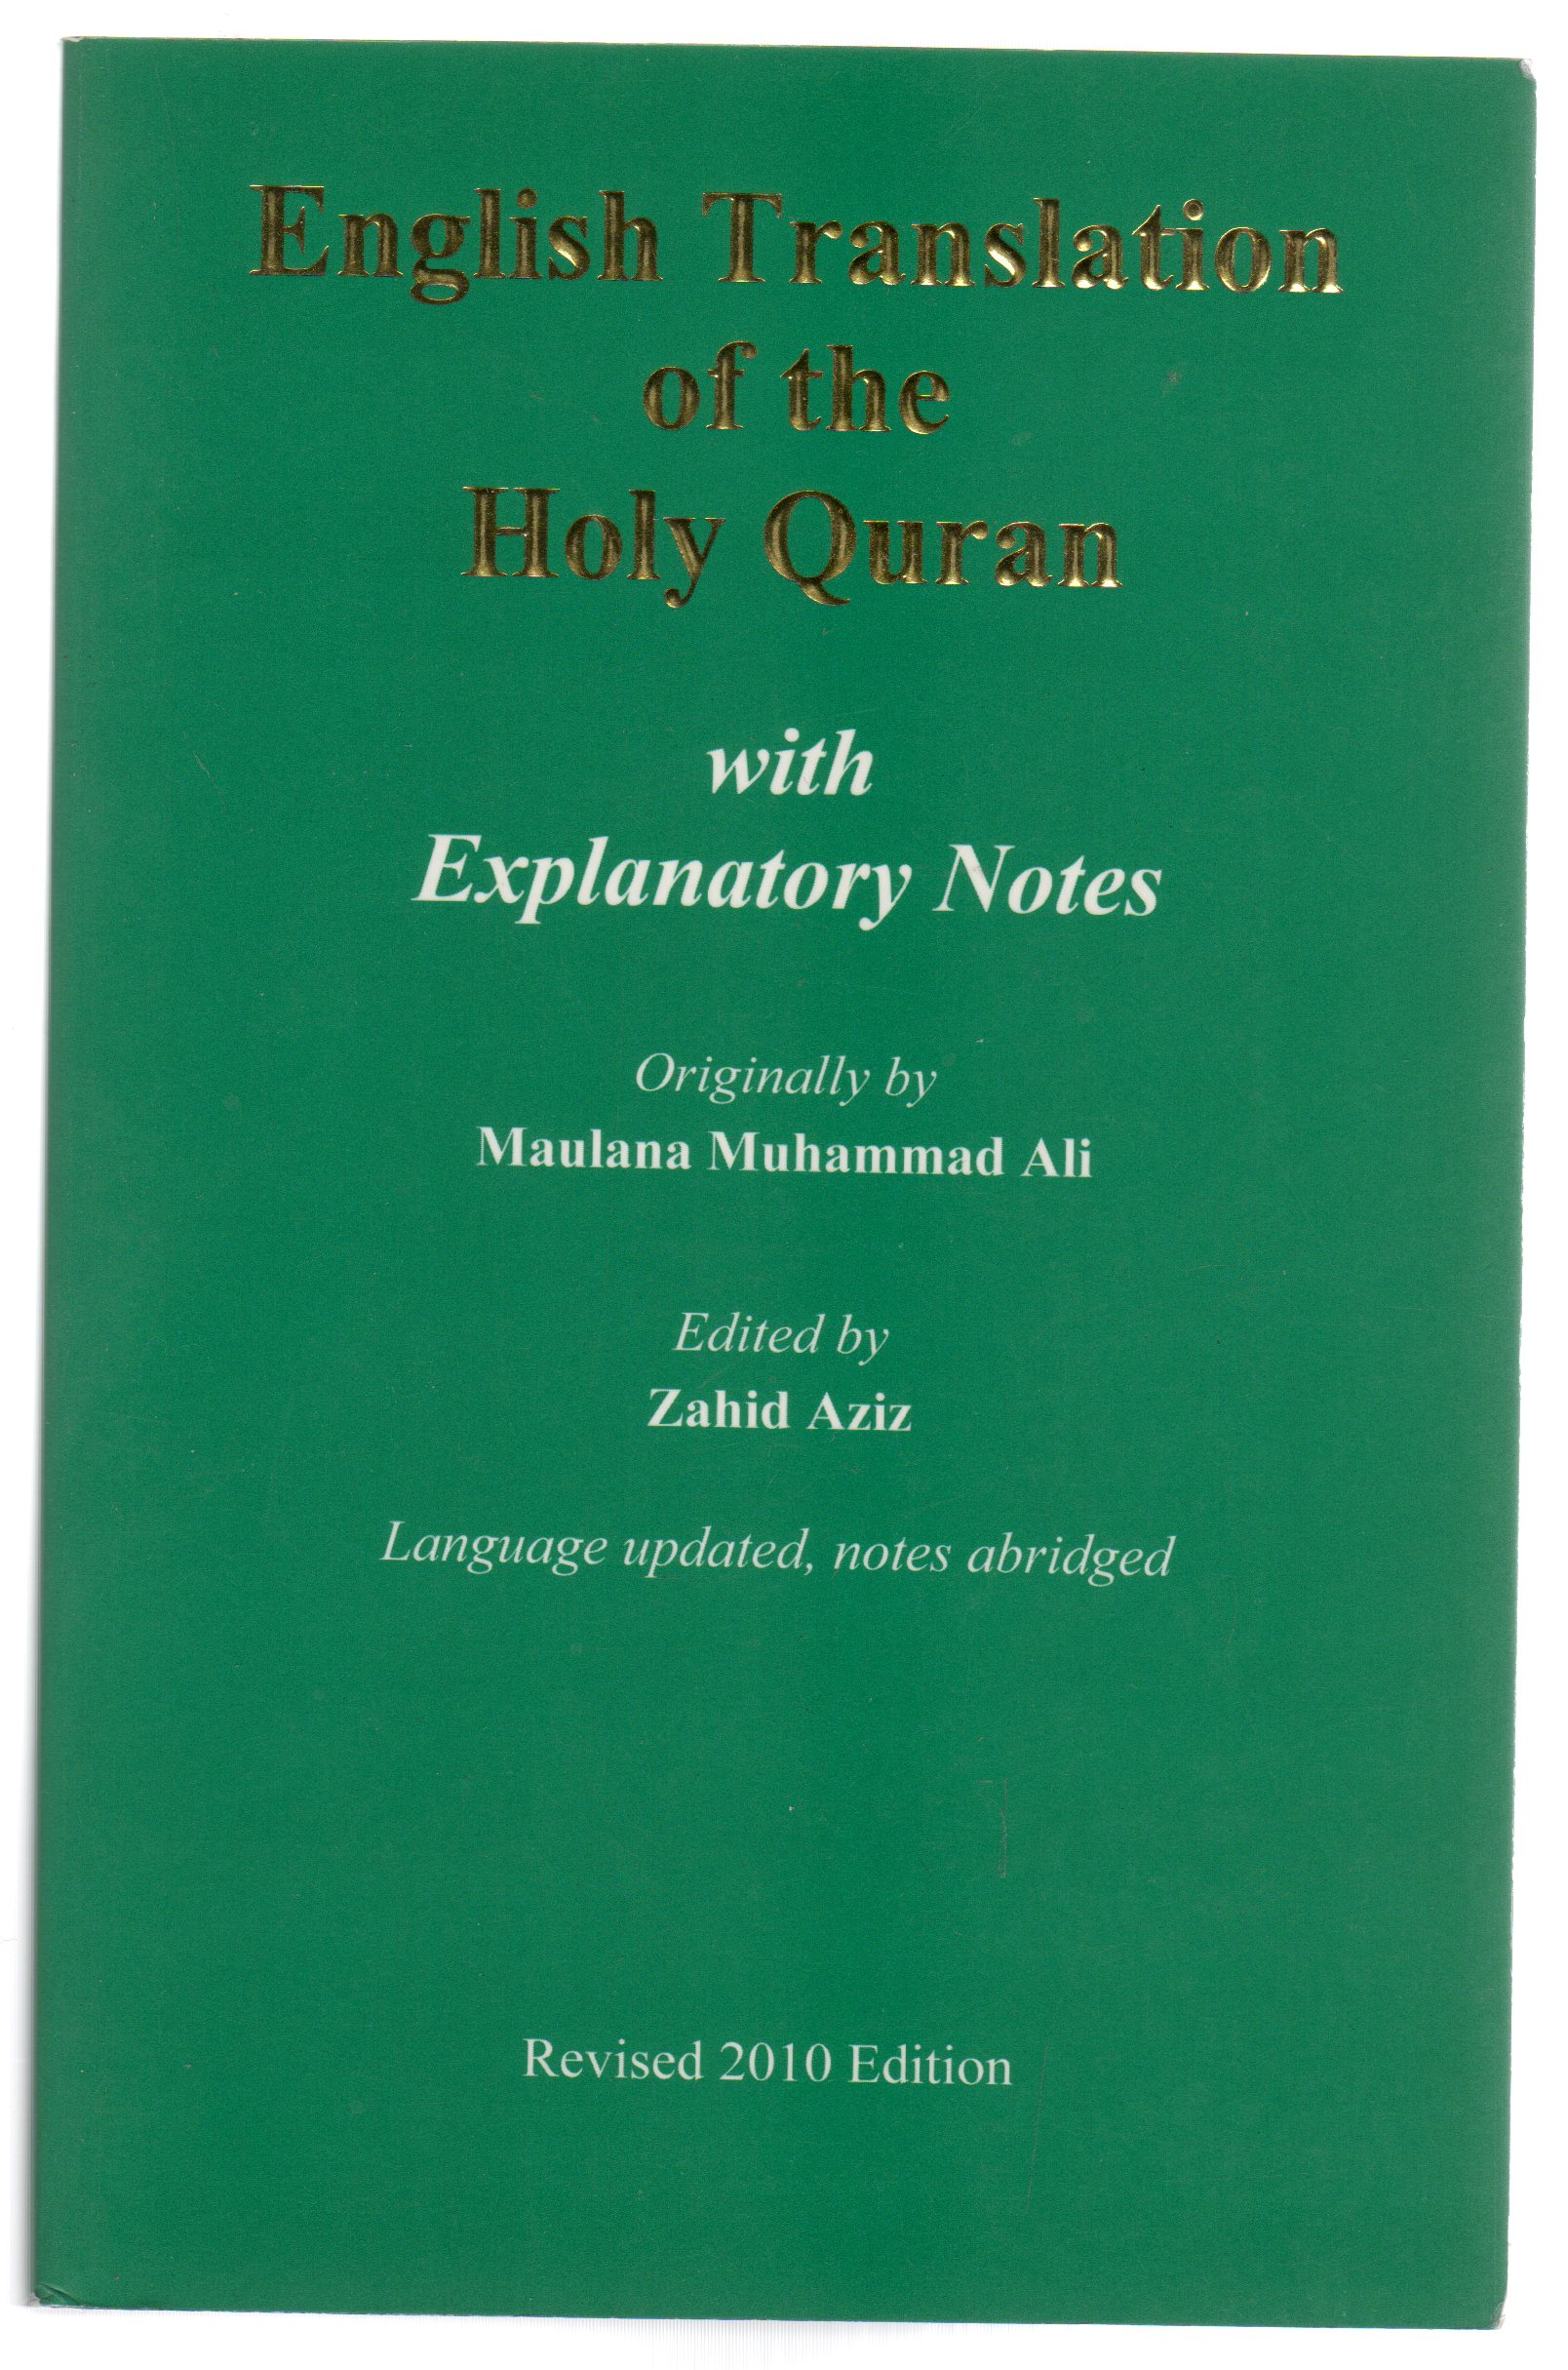 Image for English Translation of the Holy Quran: With Explanatory Notes